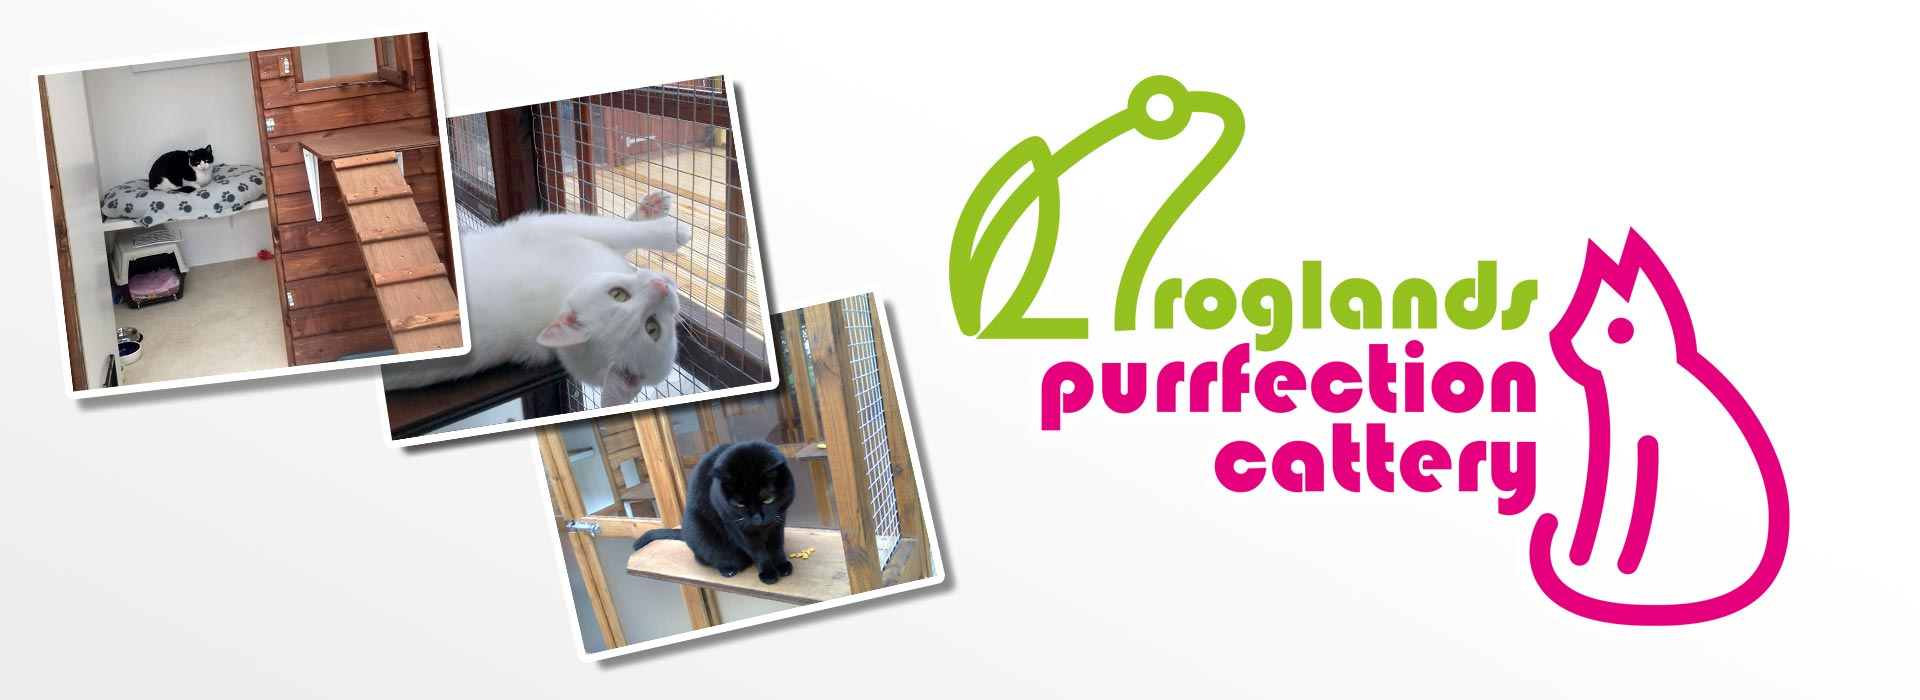 Caterham Cattery